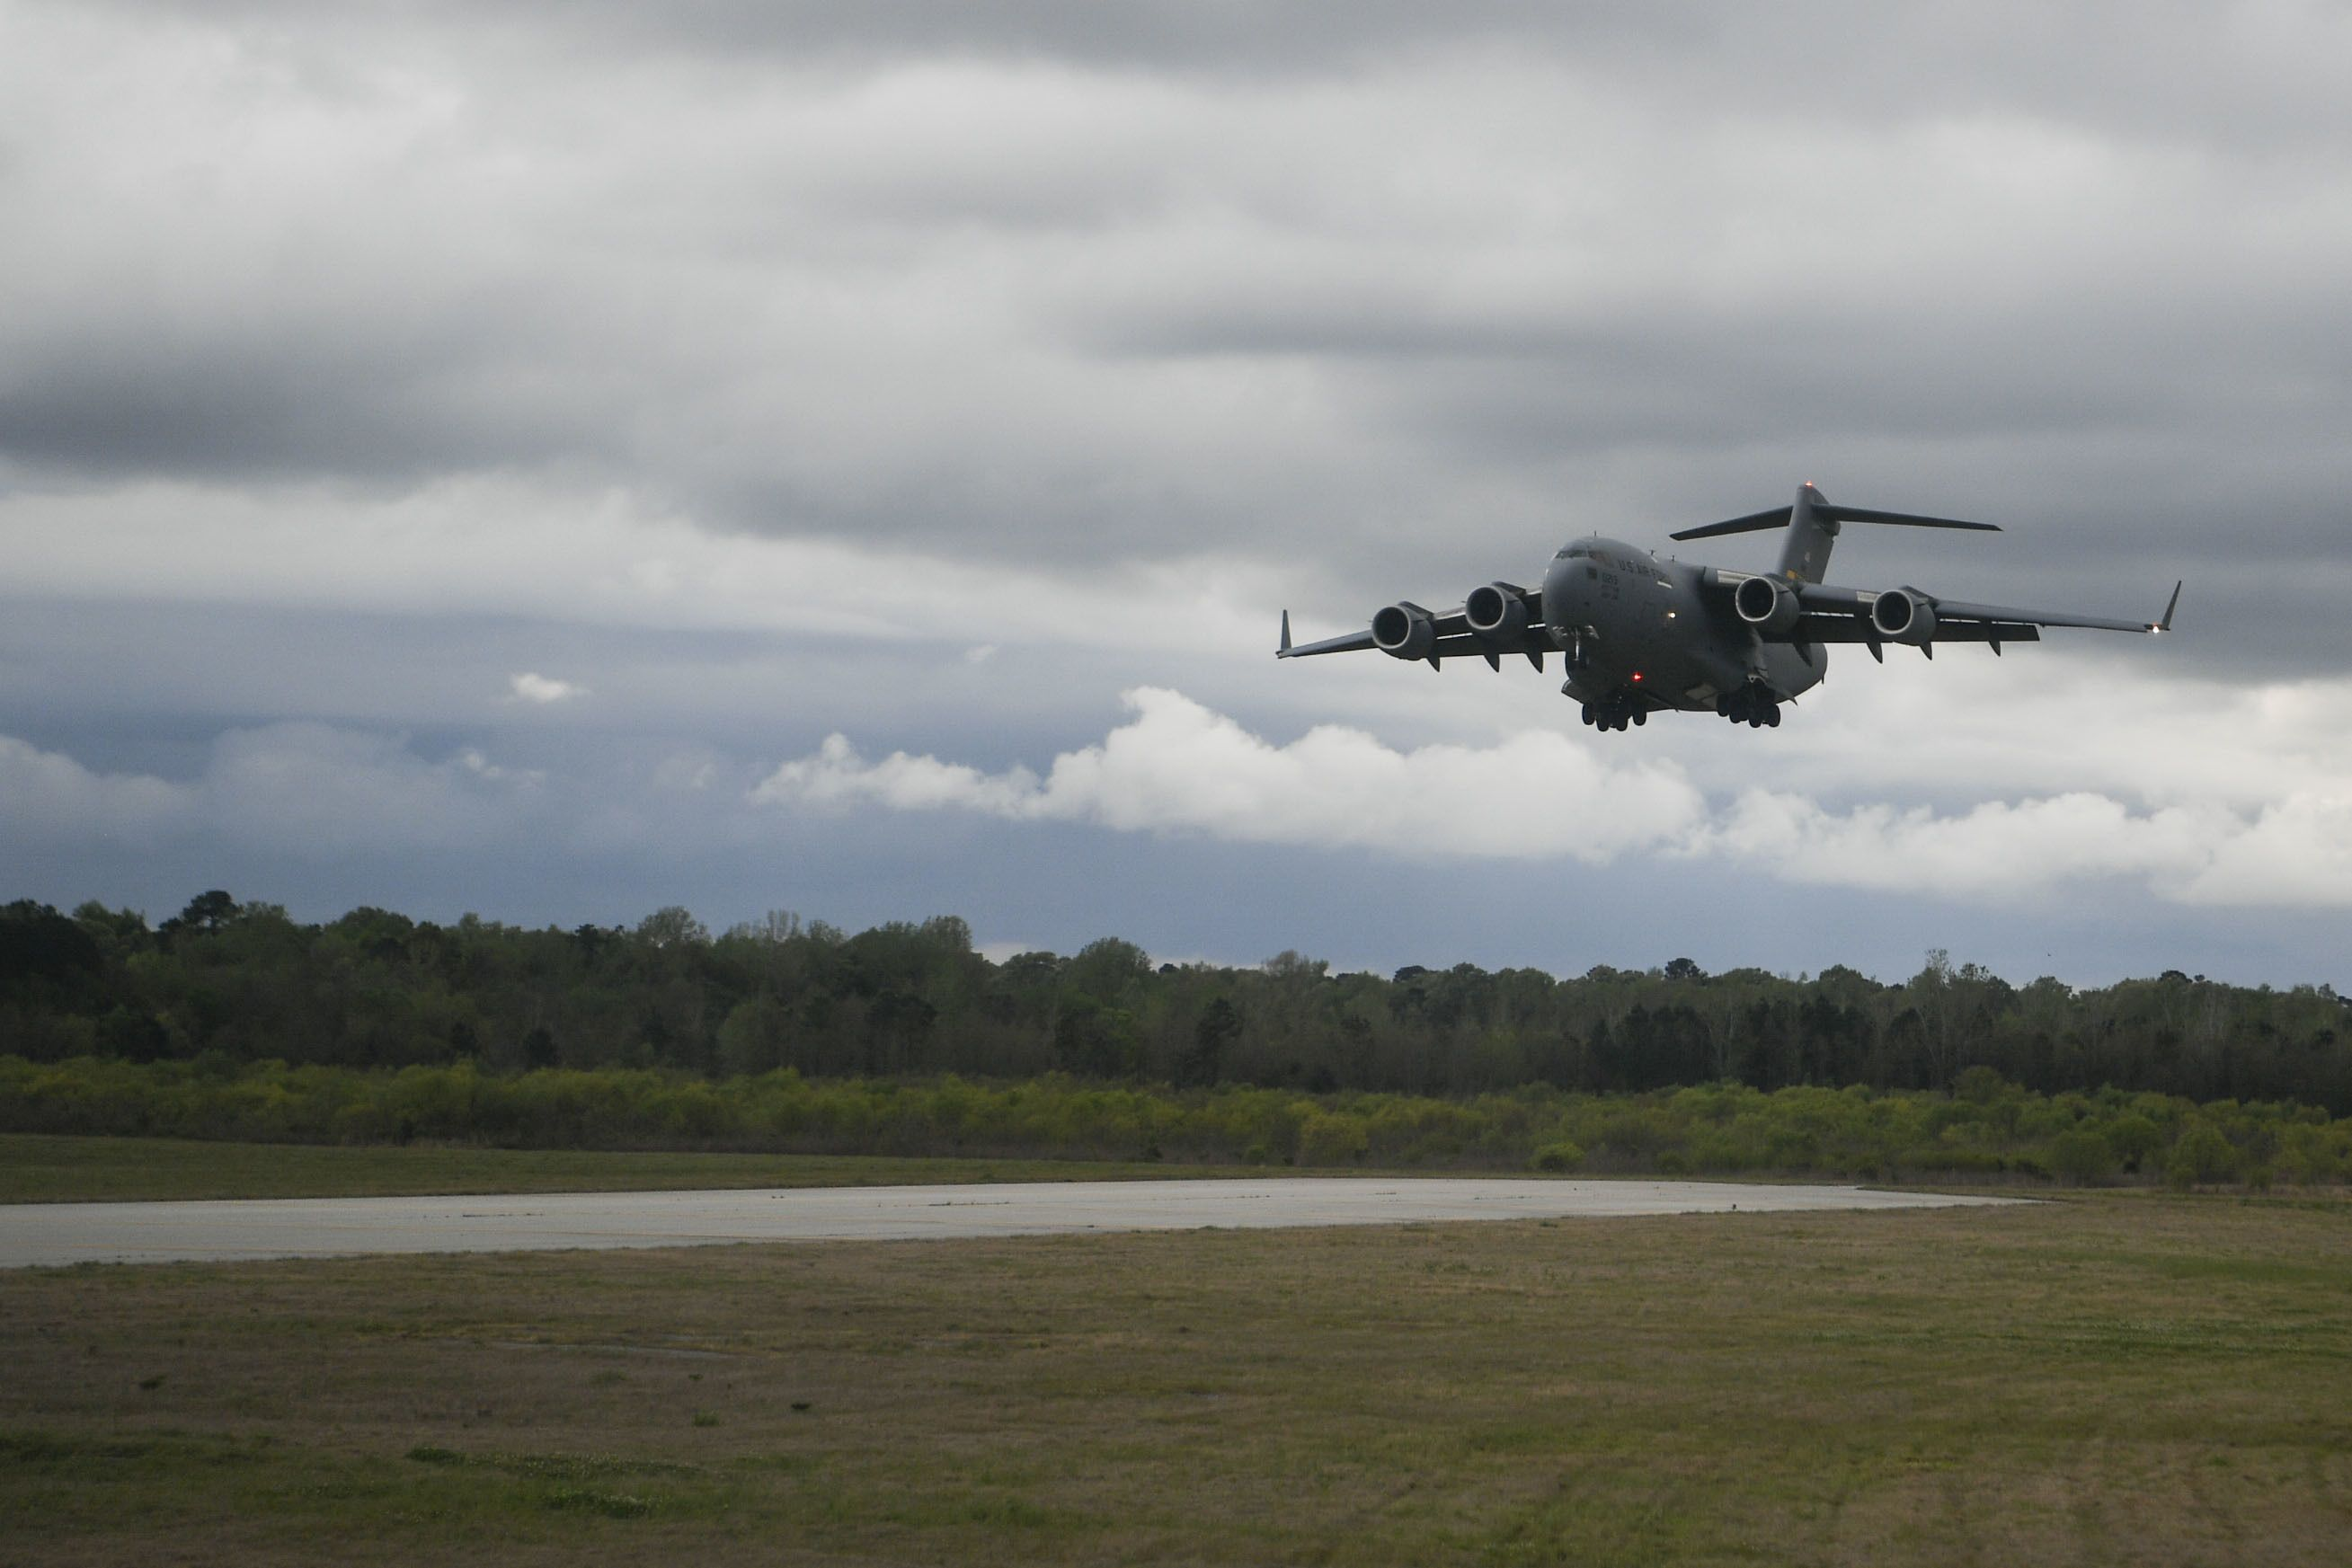 The U.S. Air Force Plans to 'Grow' Runways with Bacteria